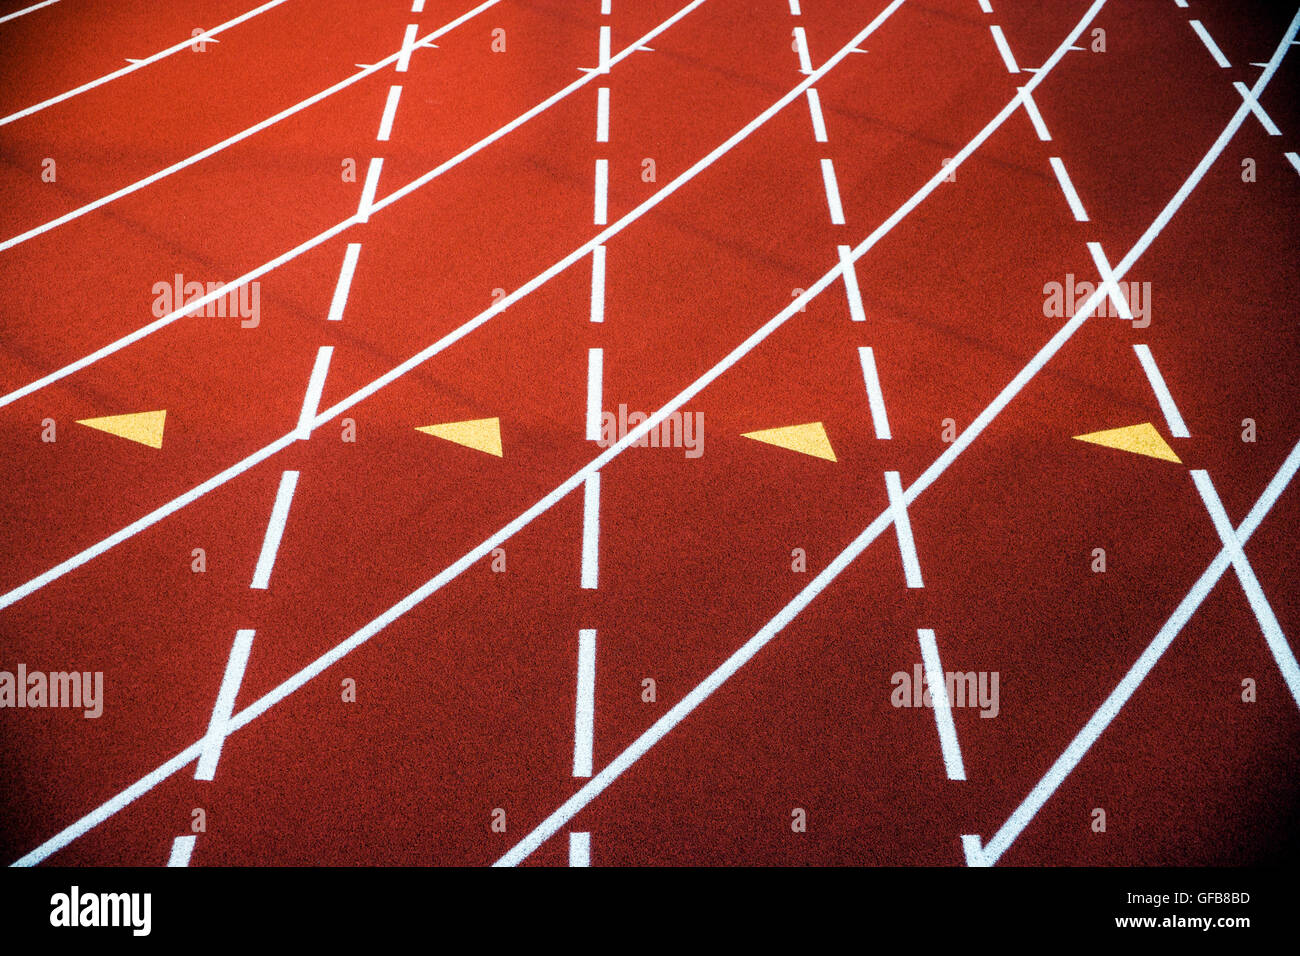 Close up of synthetic track surface at 2nd Annual Pennsylvania Distance Festival track & field meet - Stock Image